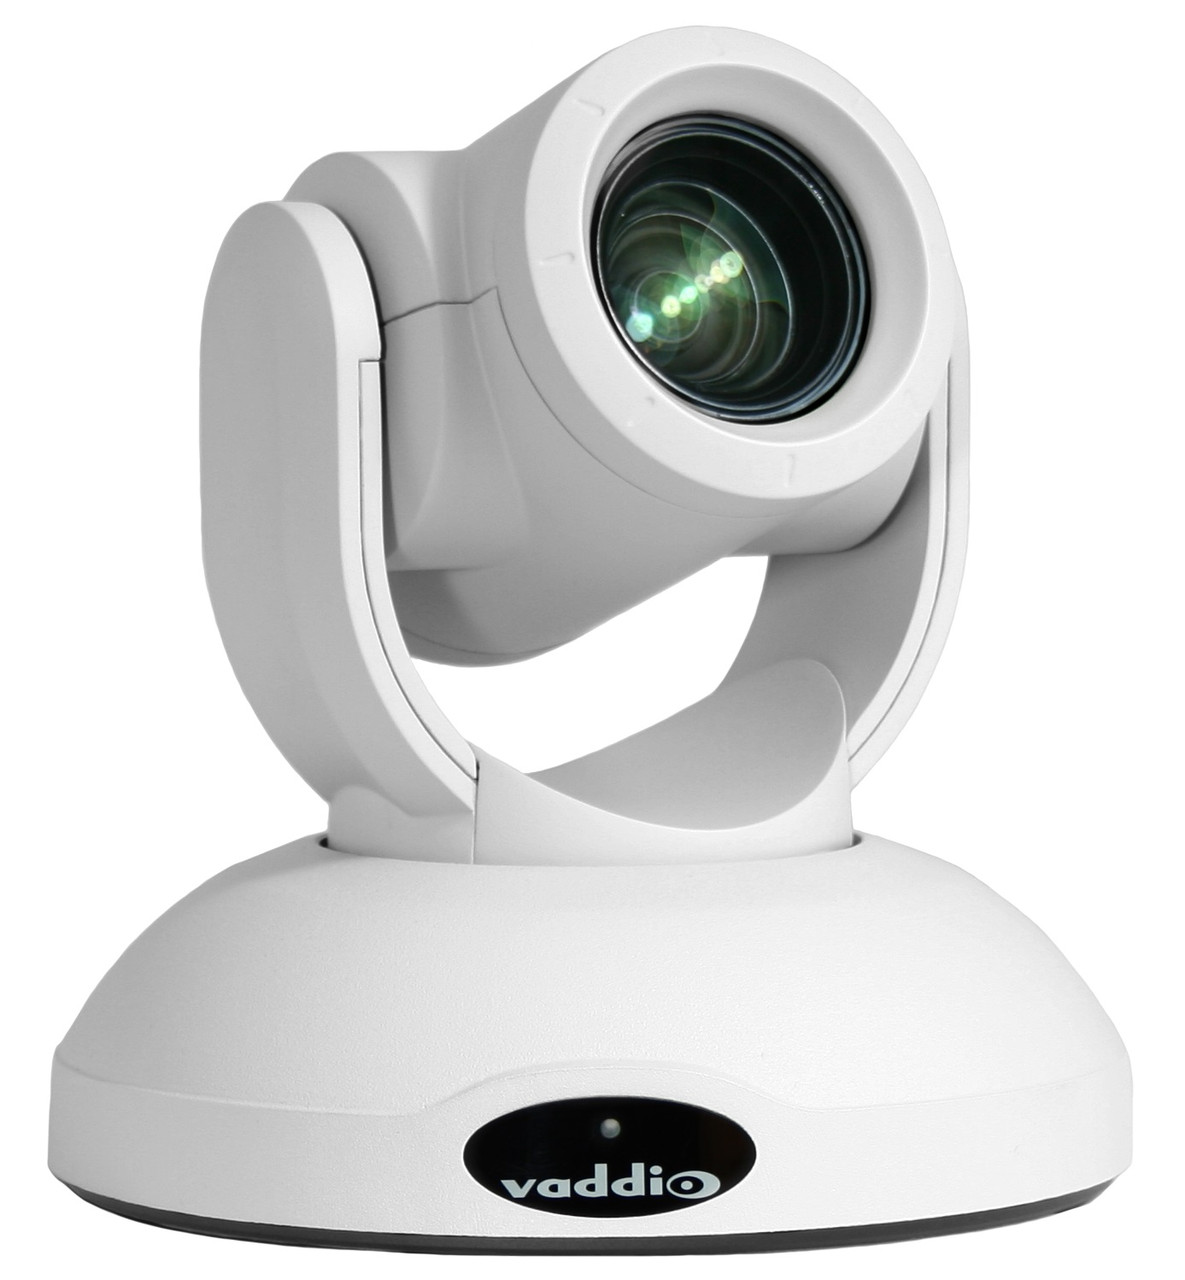 RoboSHOT 20 UHD Ultra High Definition PTZ Camera (white)